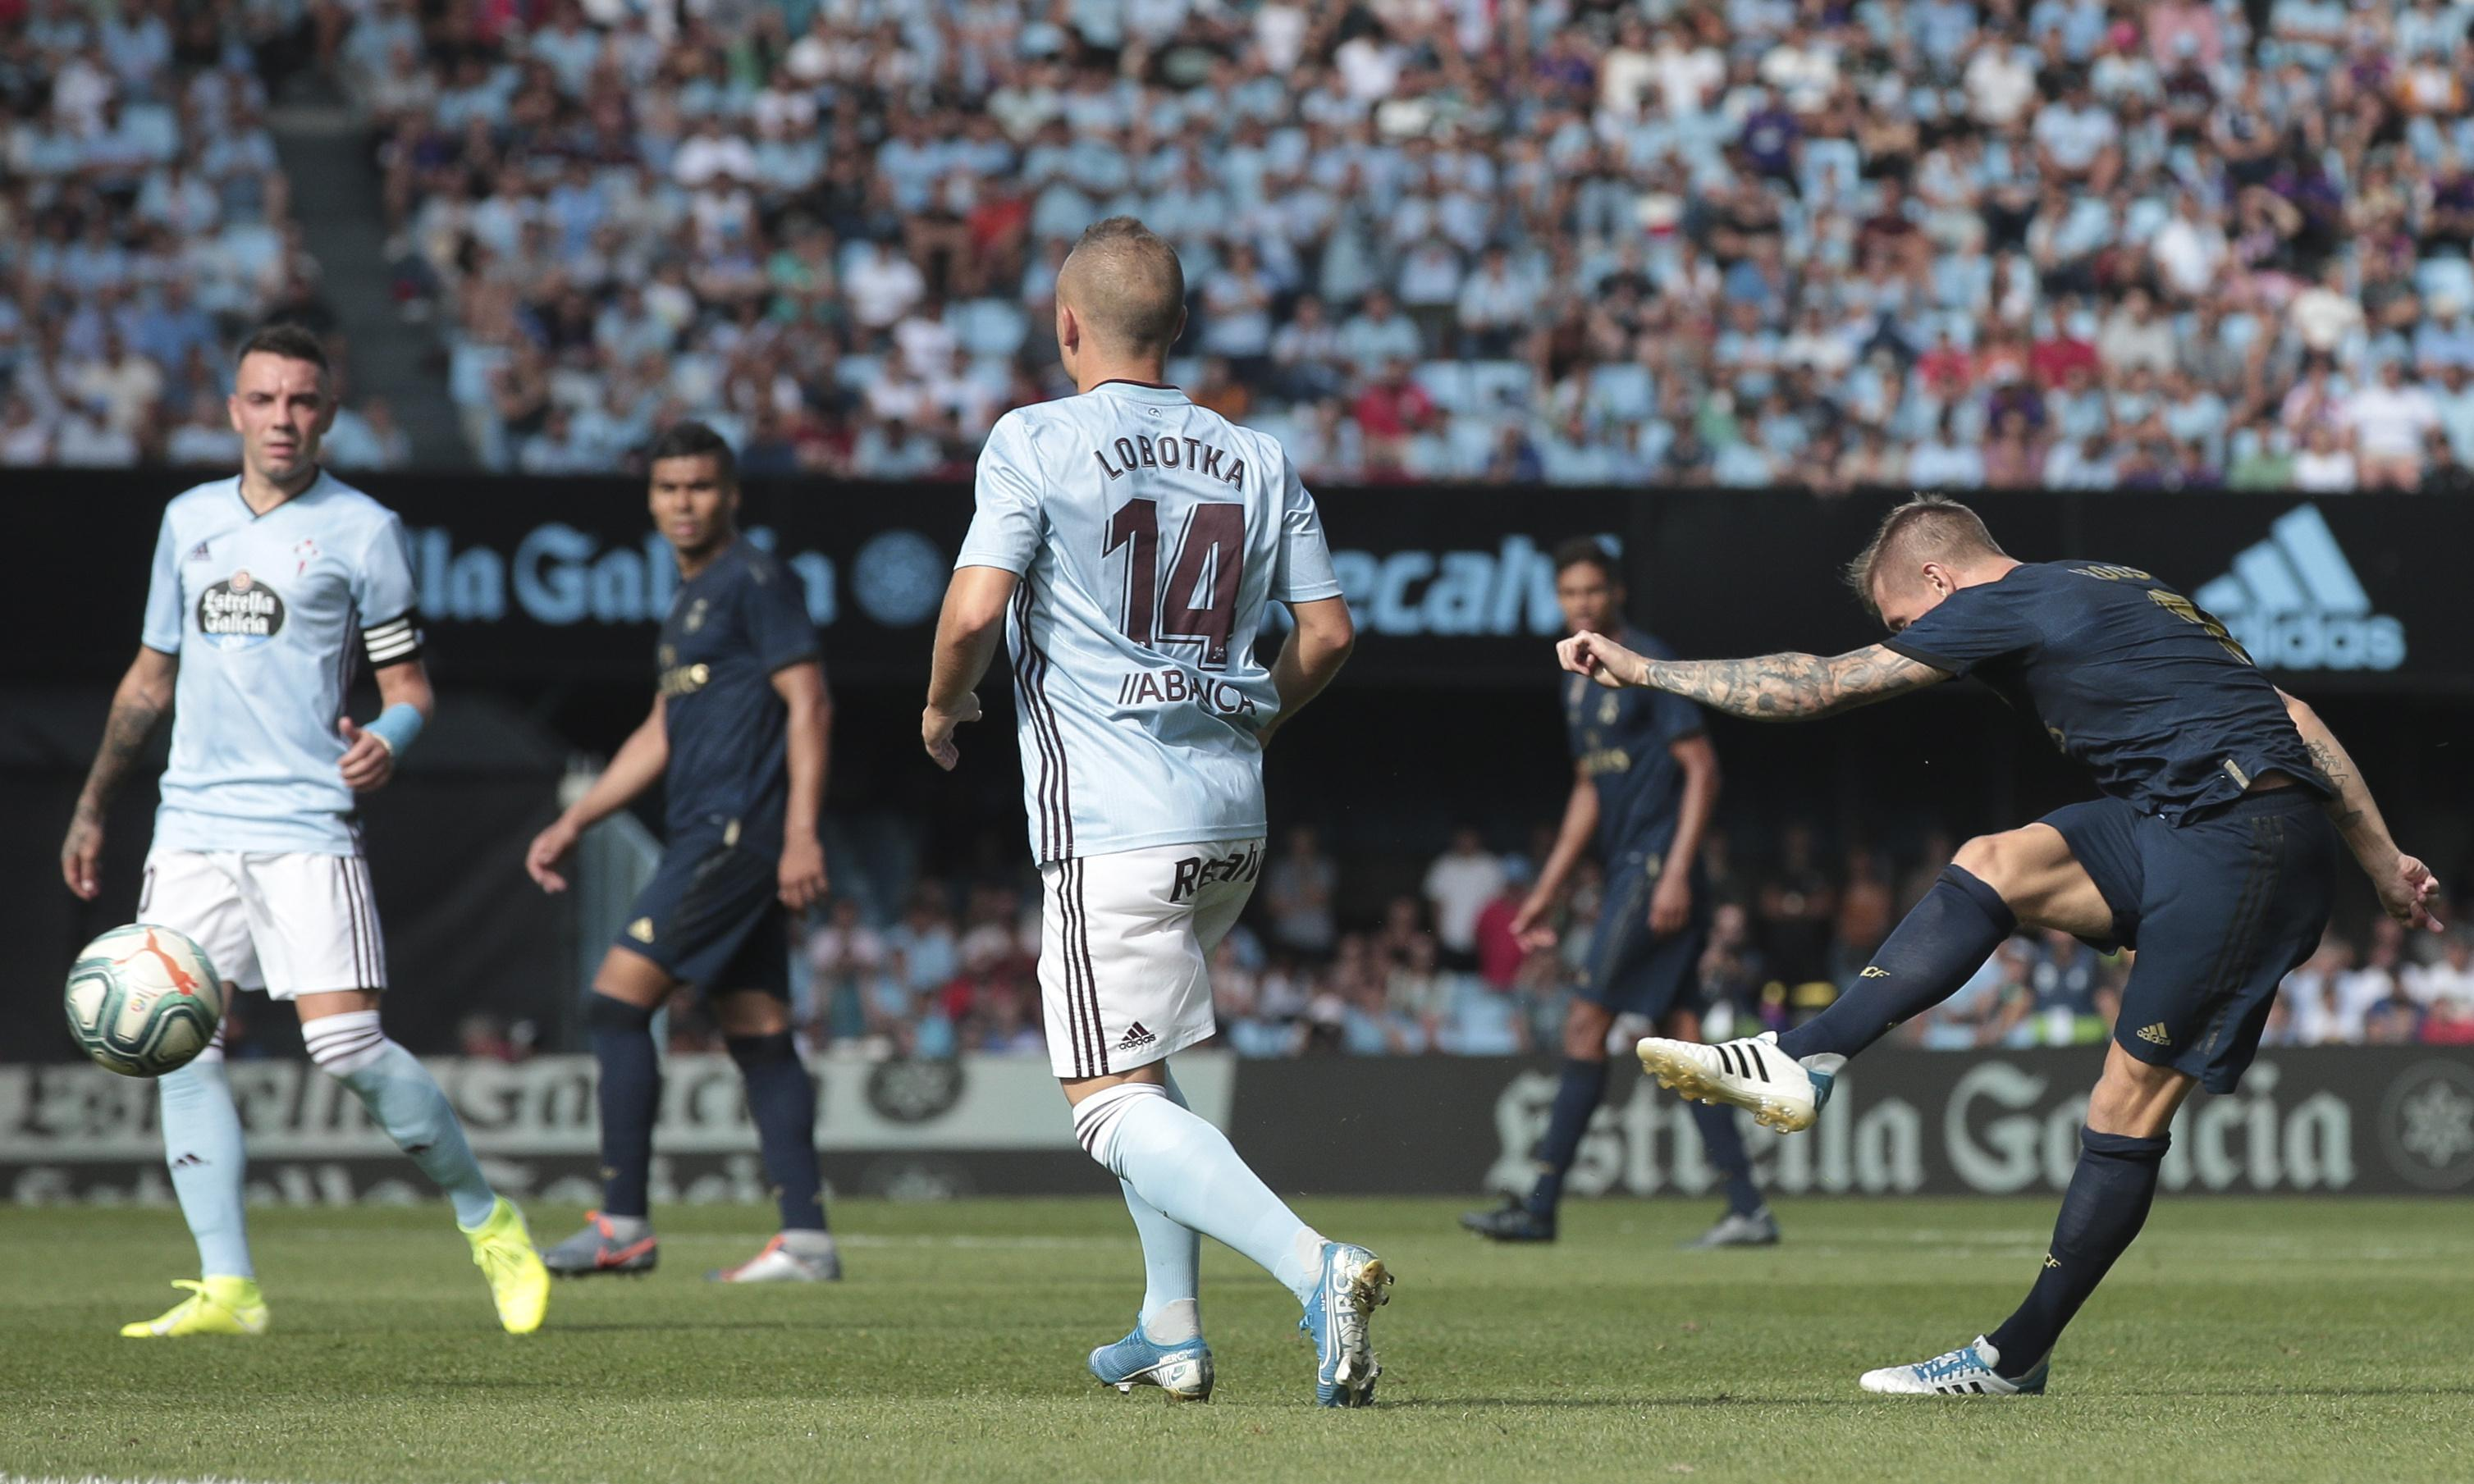 Toni Kroos scores stunning goal as Real Madrid get off to a flyer at Celta Vigo